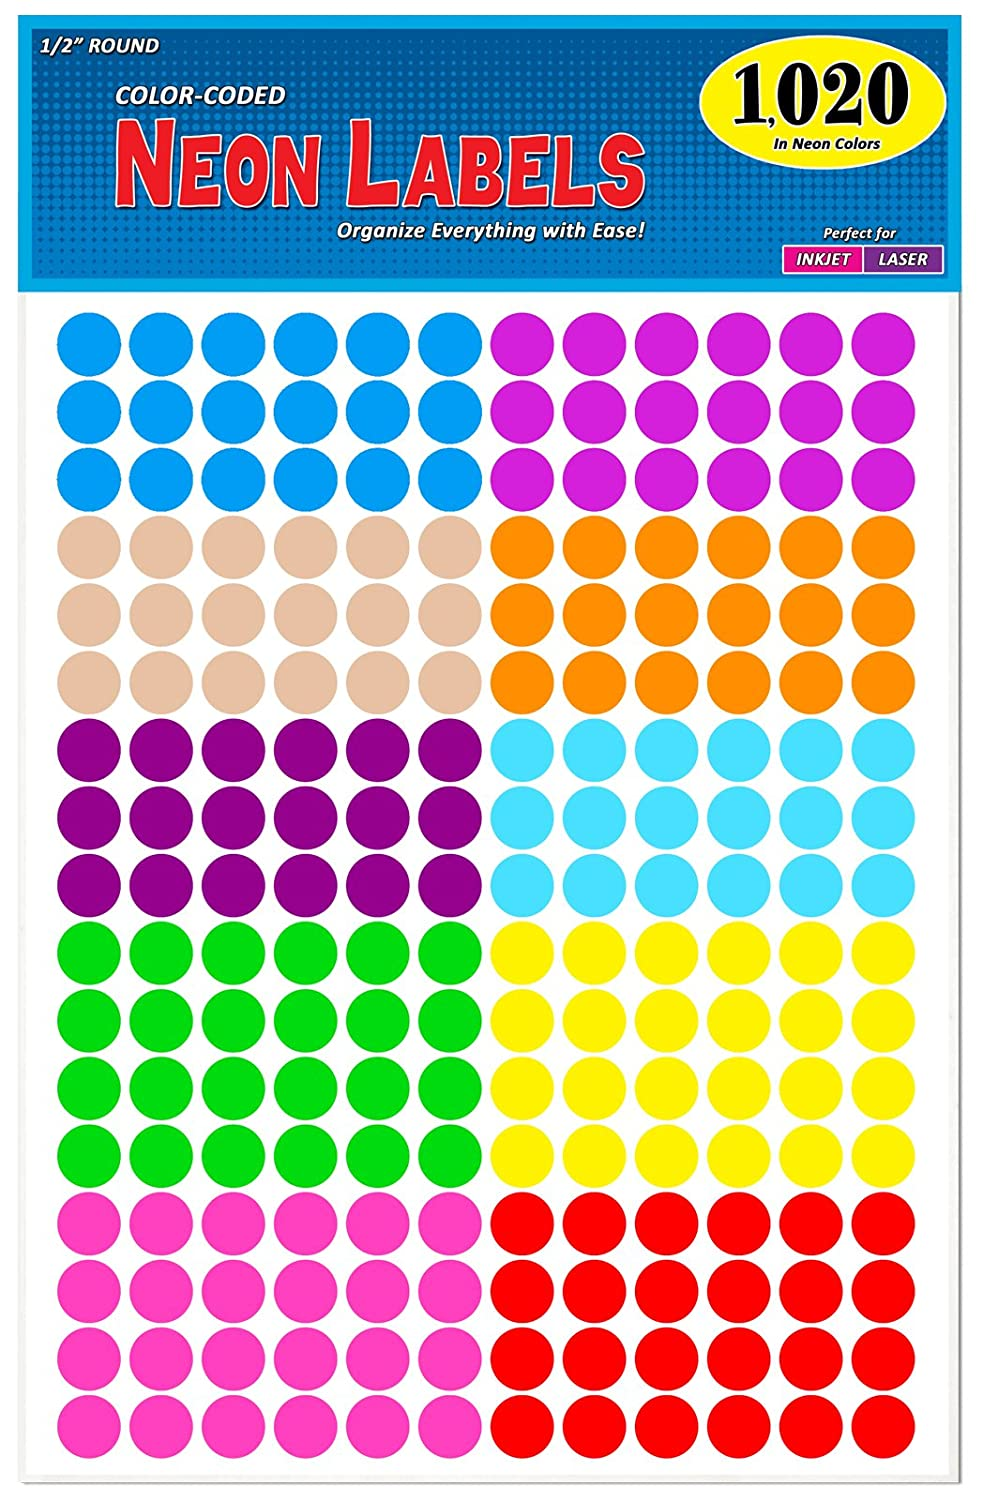 "Pack of 1020 1/2"" Round Color Coding Circle Dot Labels, 10 Bright Neon Colors, 8 1/2"" x 11"" Sheet, Fits Any Printer…"